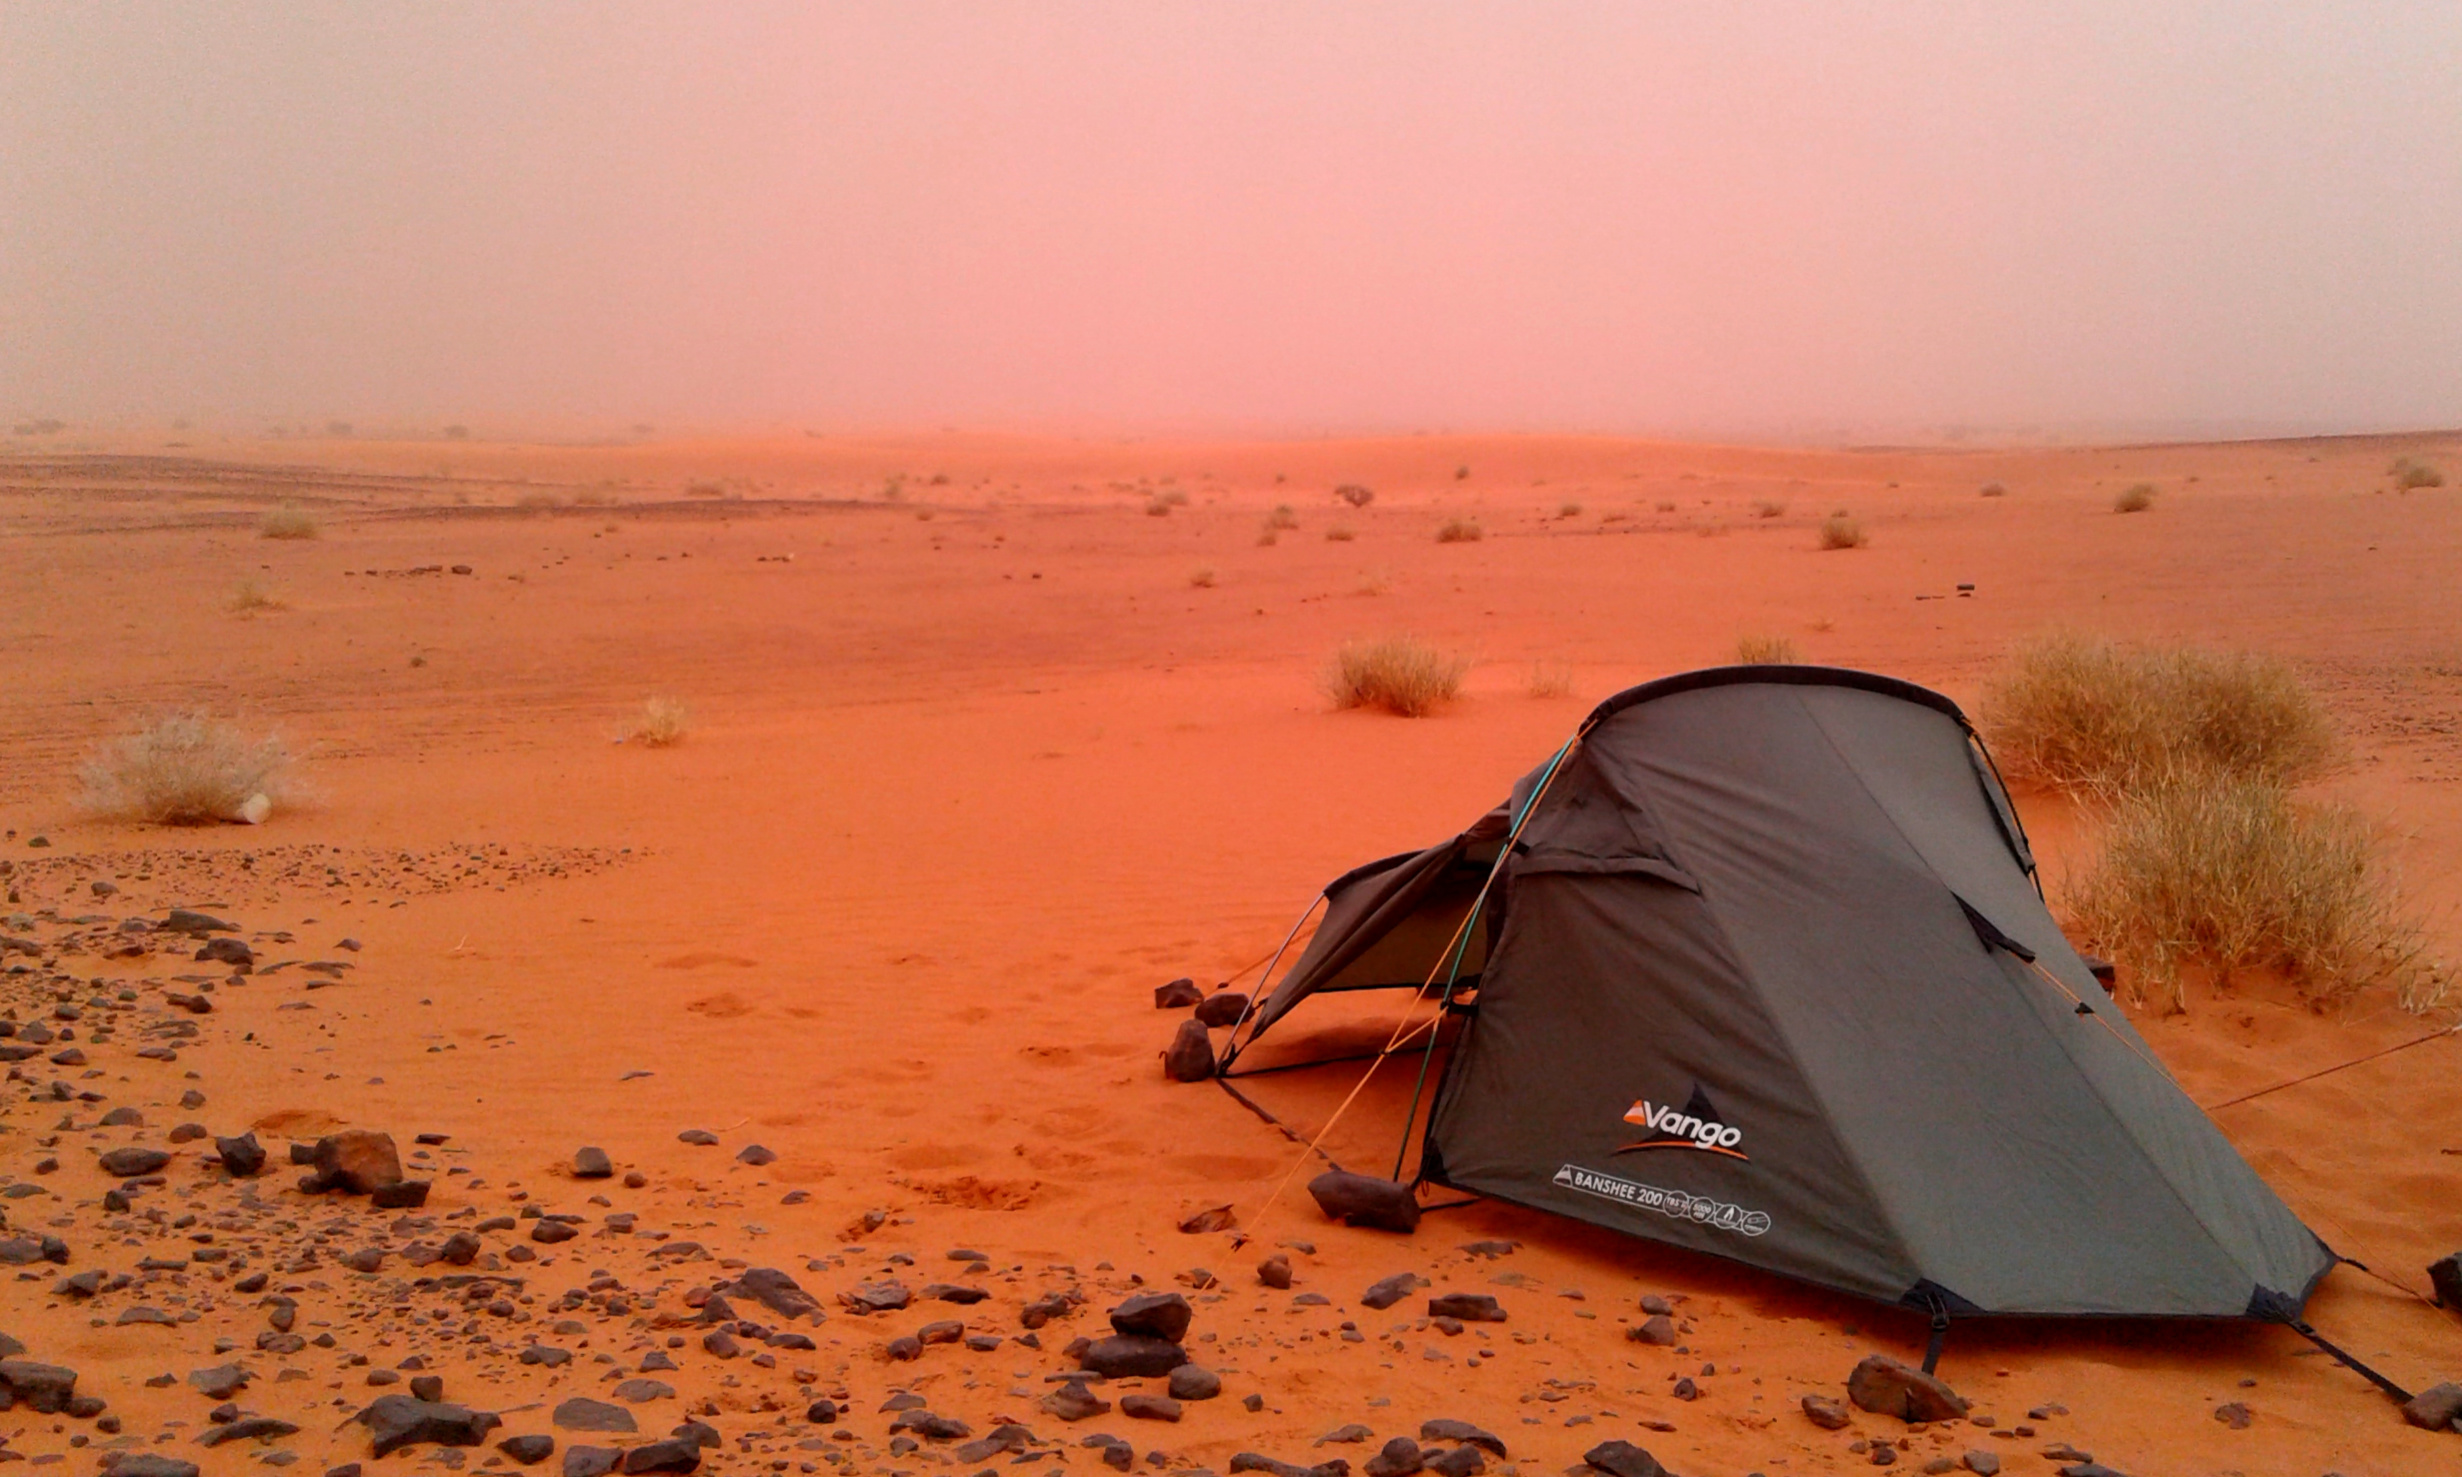 My trusty Vango Banshee 200 providing me some shelter from the sandy winds of the Sudanese desert…